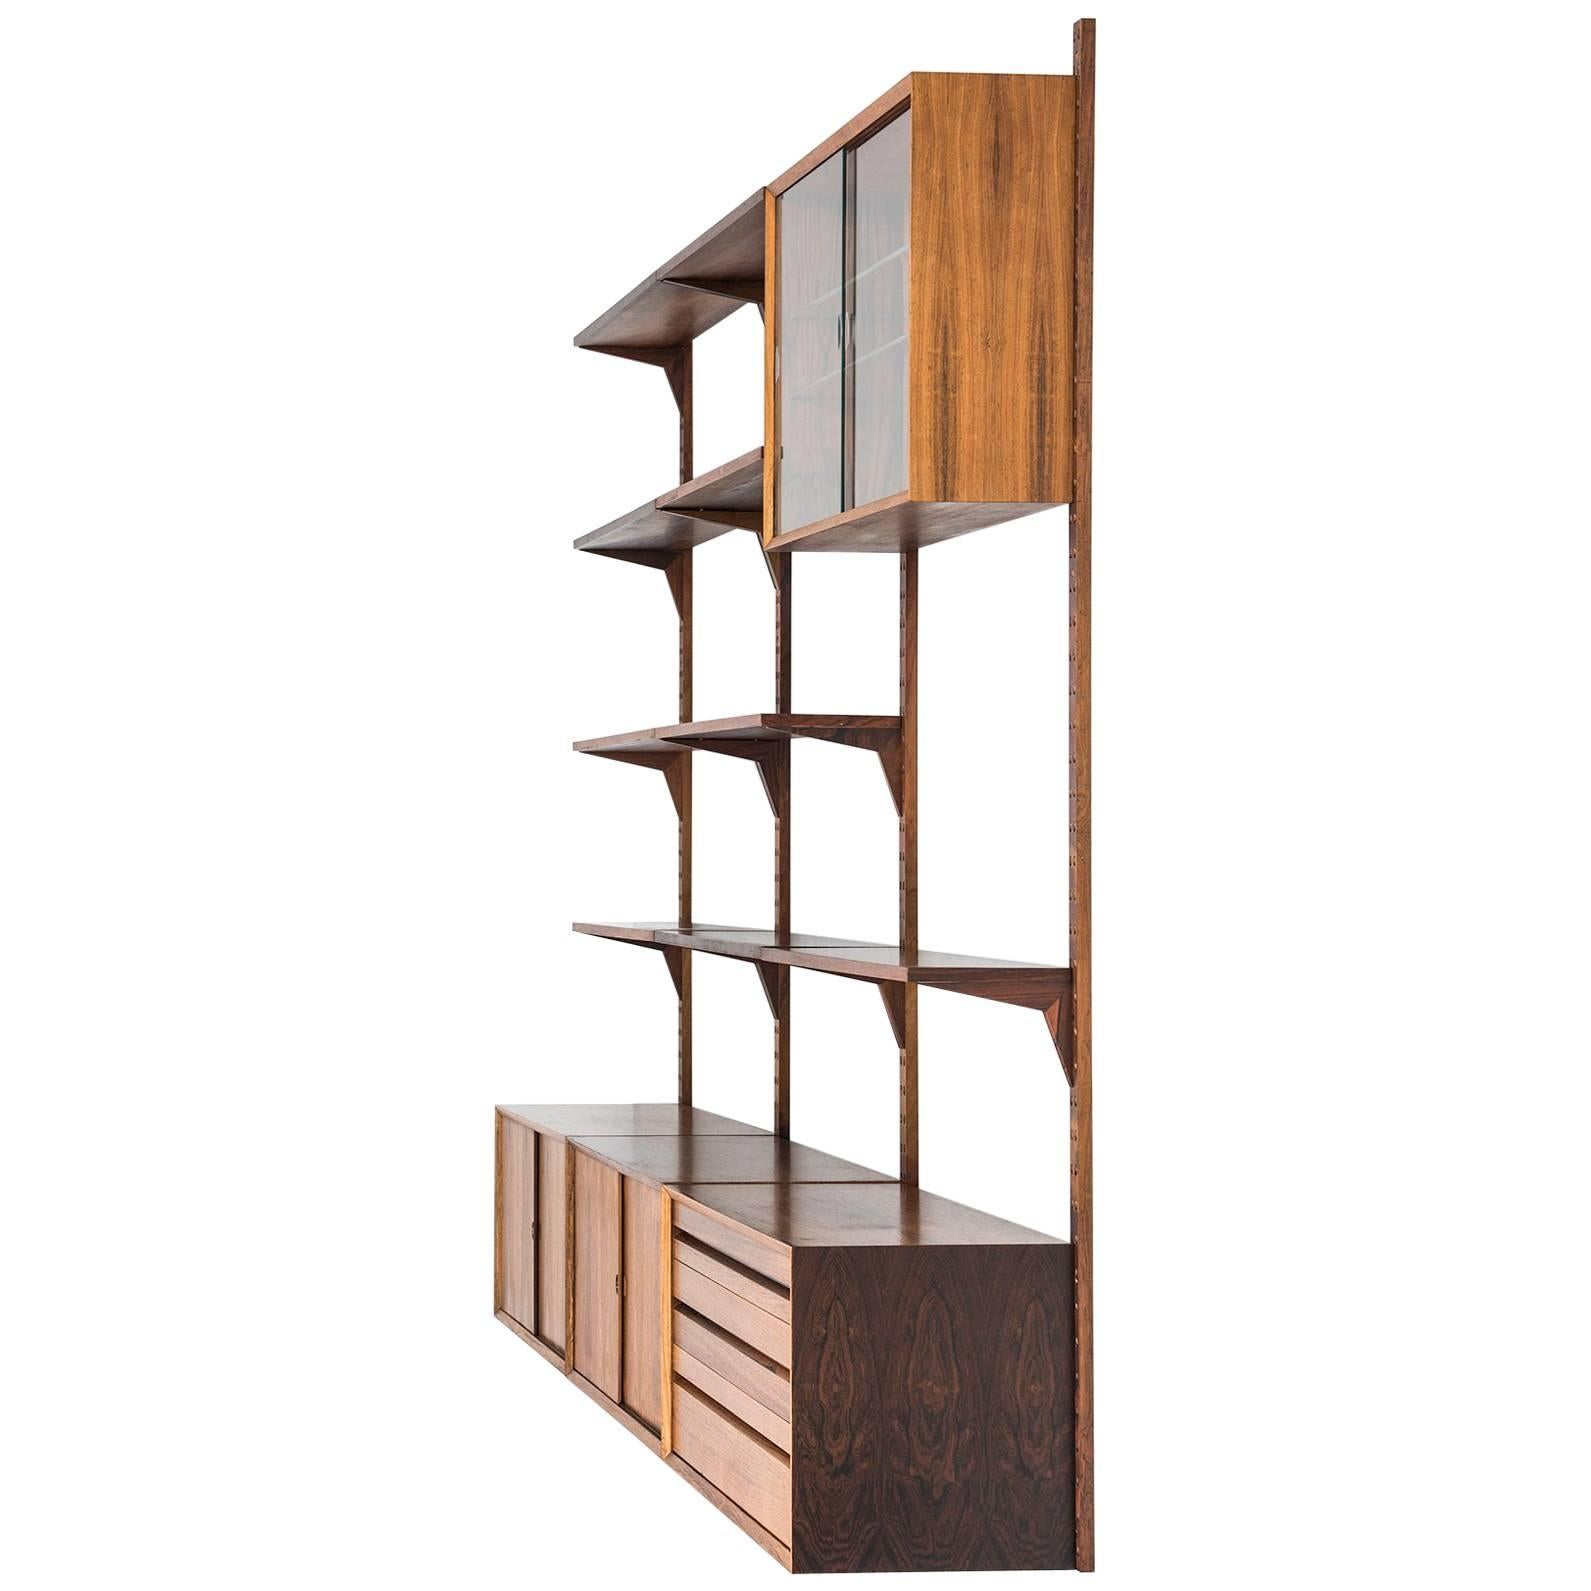 Modular Danish Modern Teak Cado Wall Unit After Poul